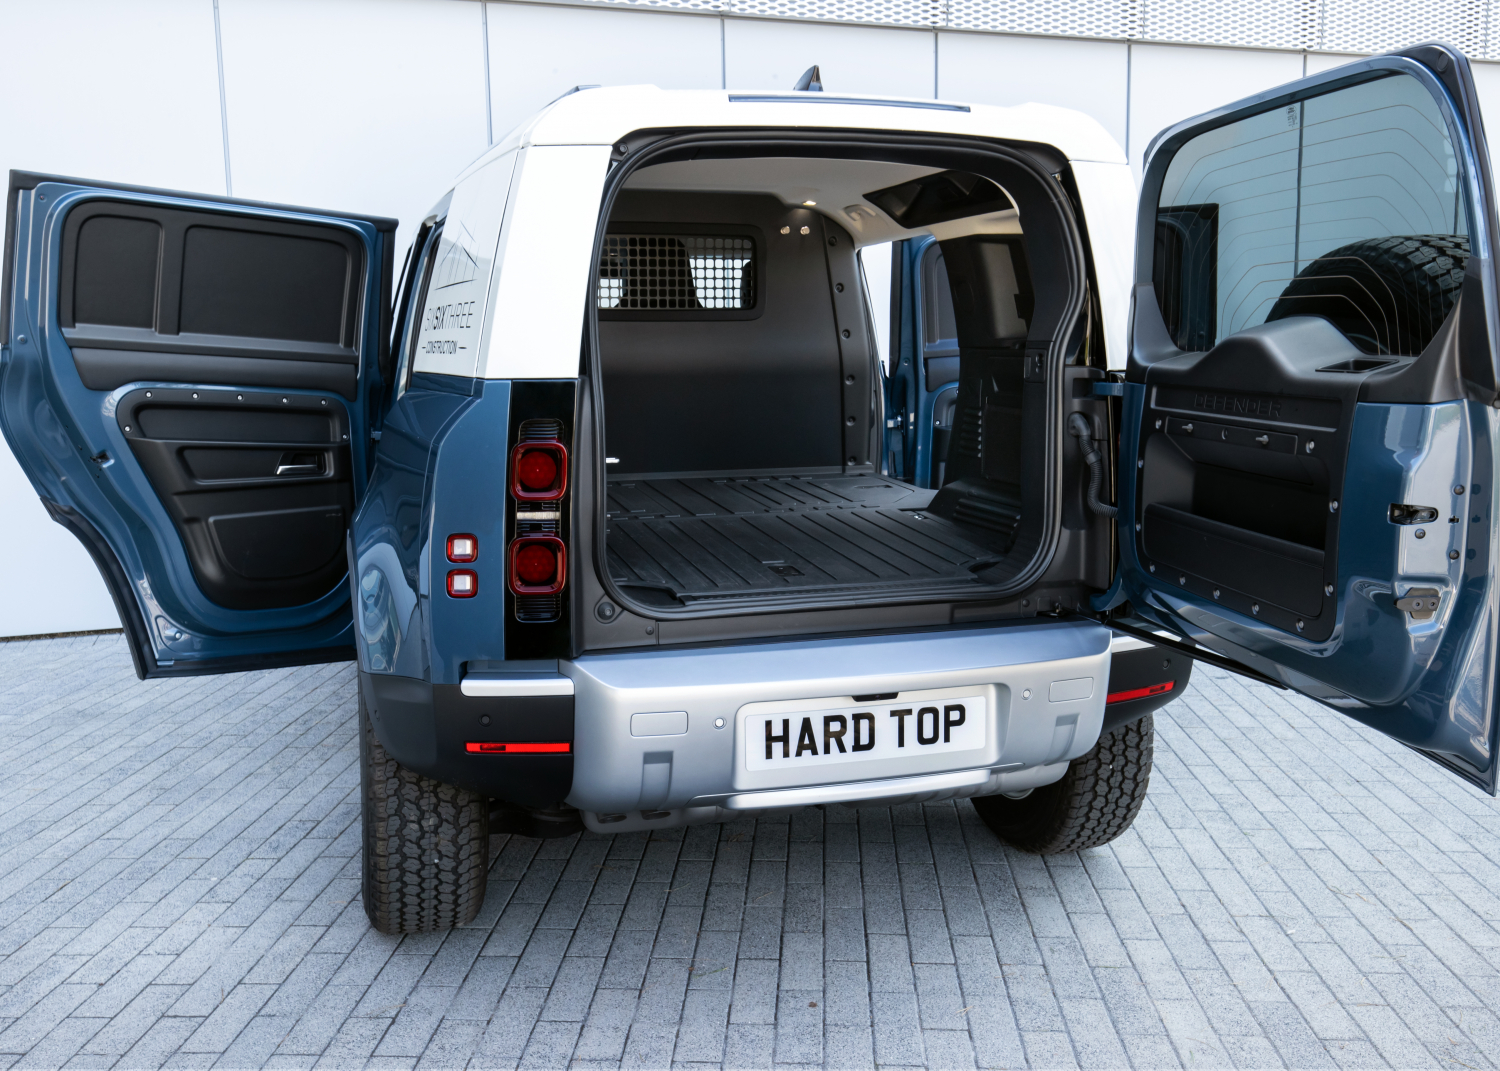 Land Rover Defender Hard Top: most Rugged and Durable Commercial Vehicle on Sale now - Image 5